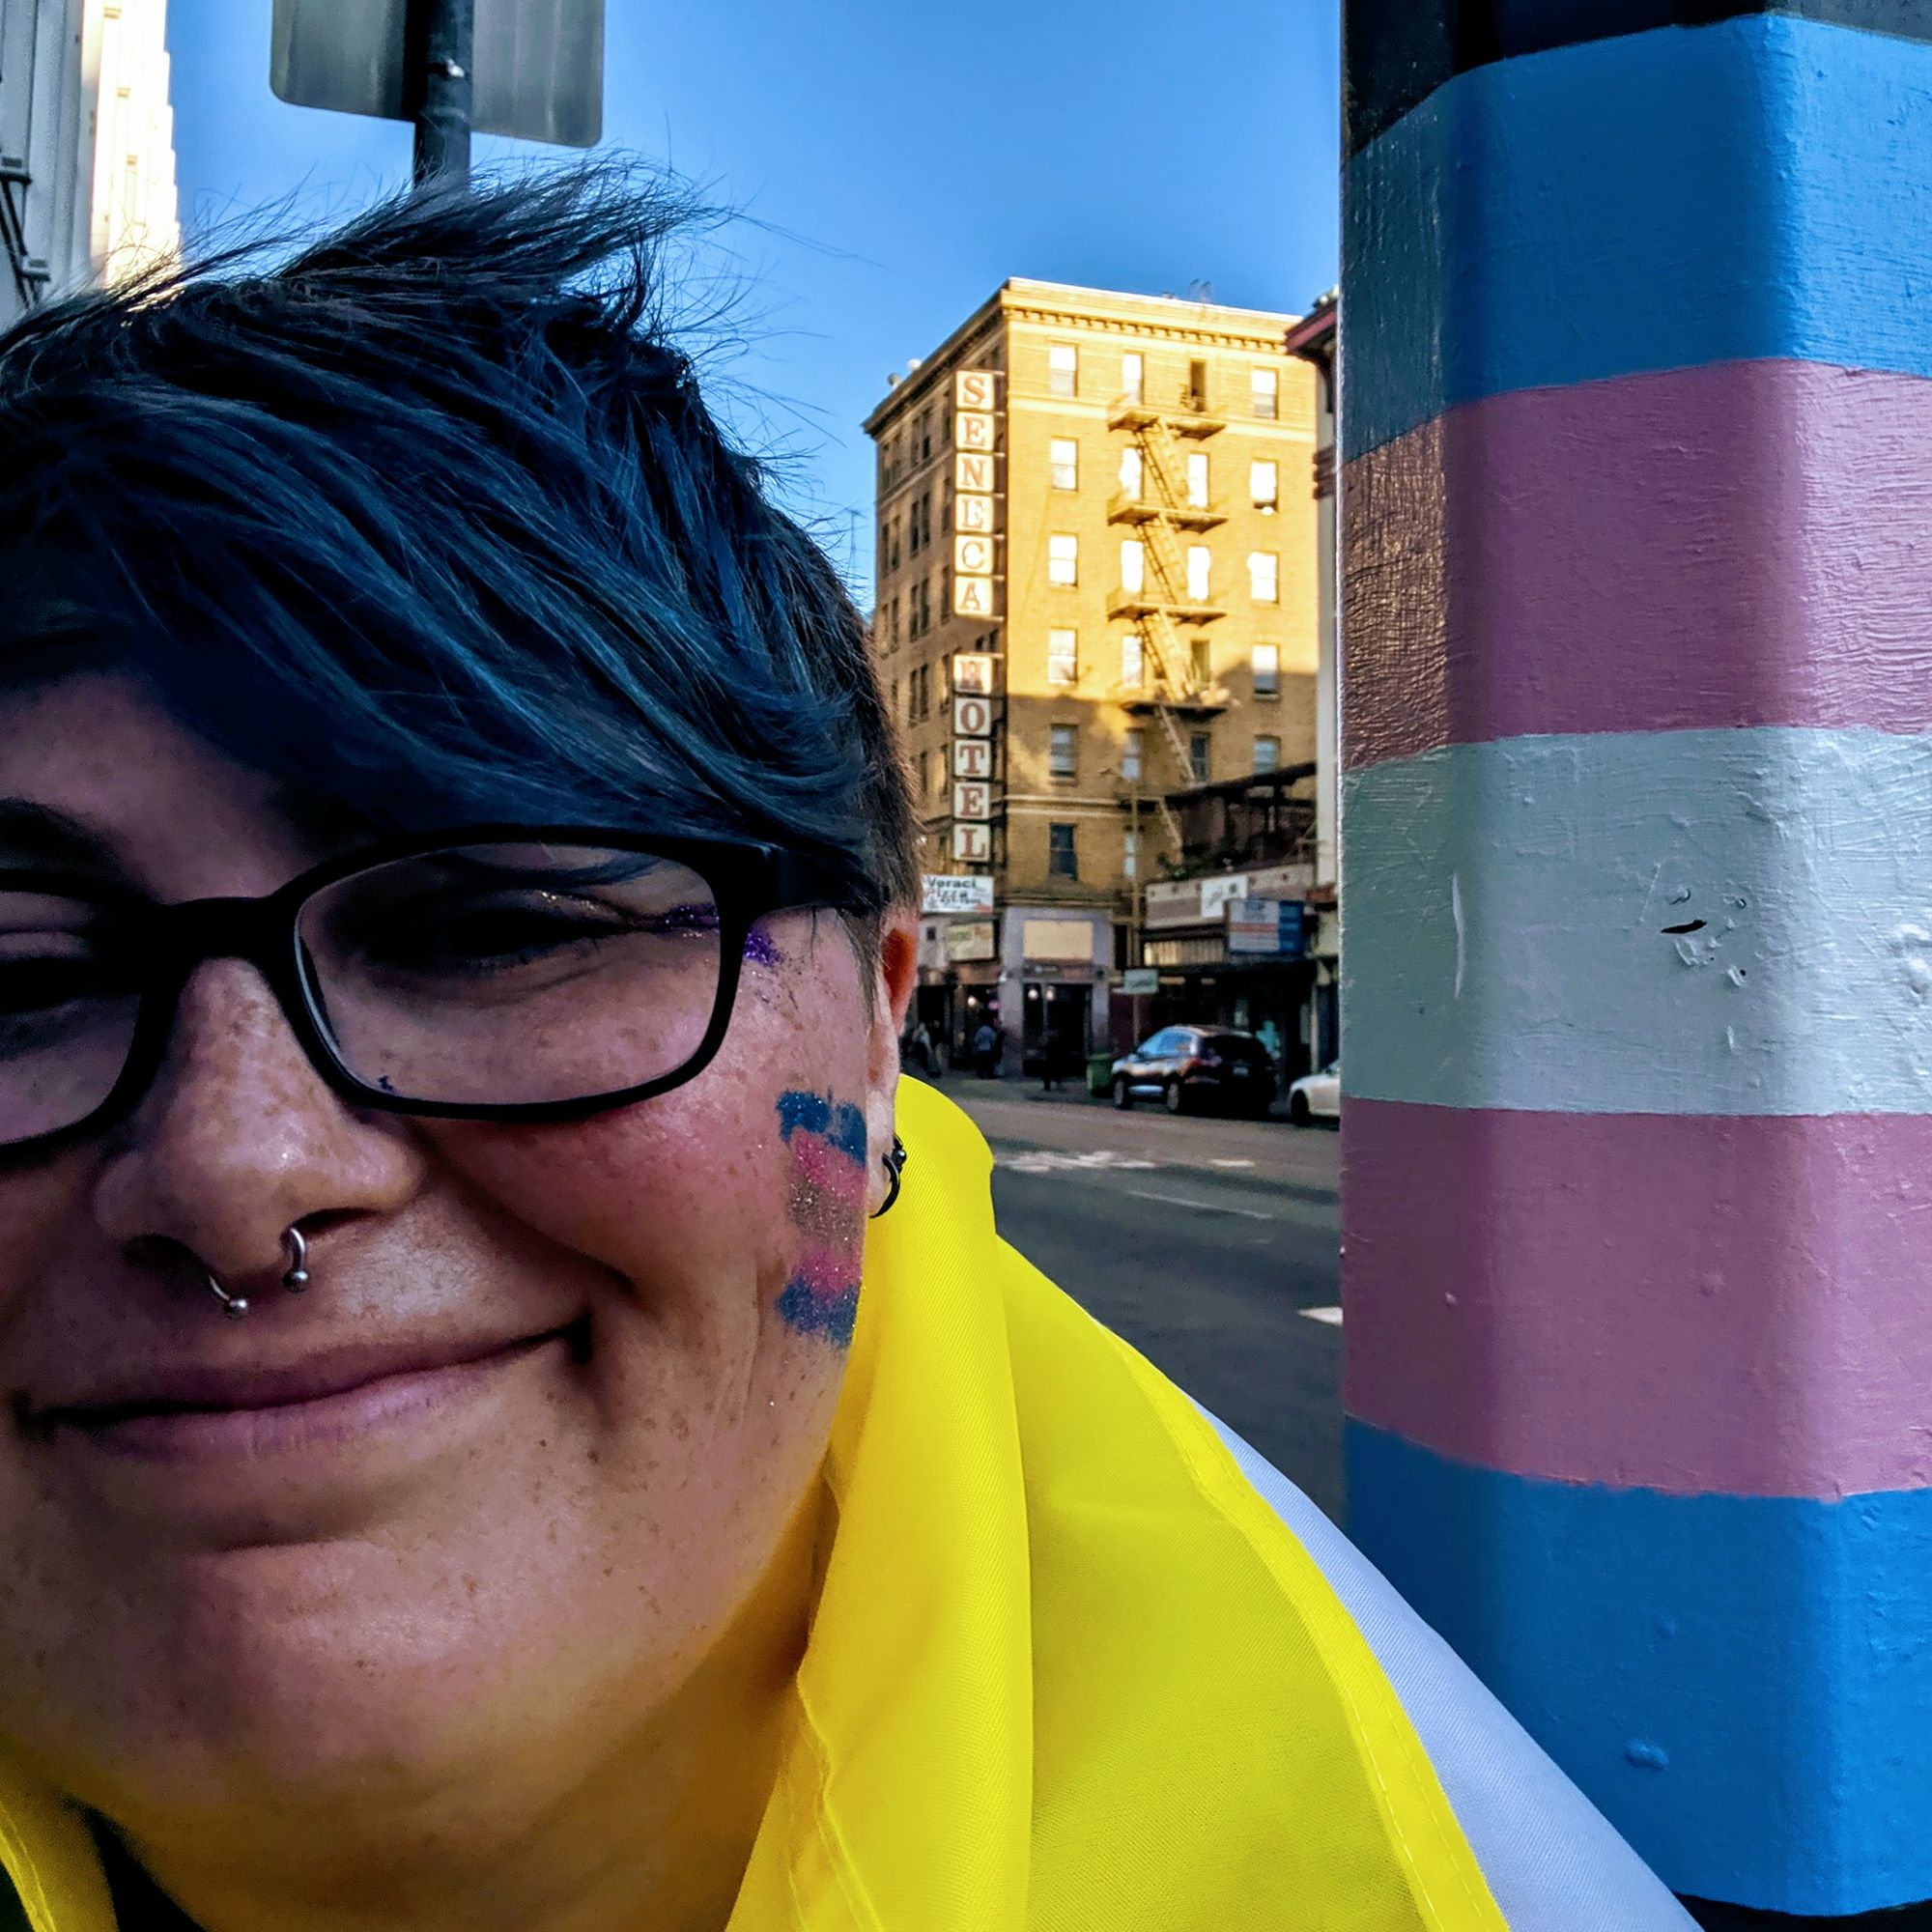 Reid is smiling and standing next to a light pole in San Francisco's Tenderloin that has a trans flag painted on it. They are smiling, have a glitter trans flag painted on their cheek, and a non-binary pride flag wrapped around their shoulders.